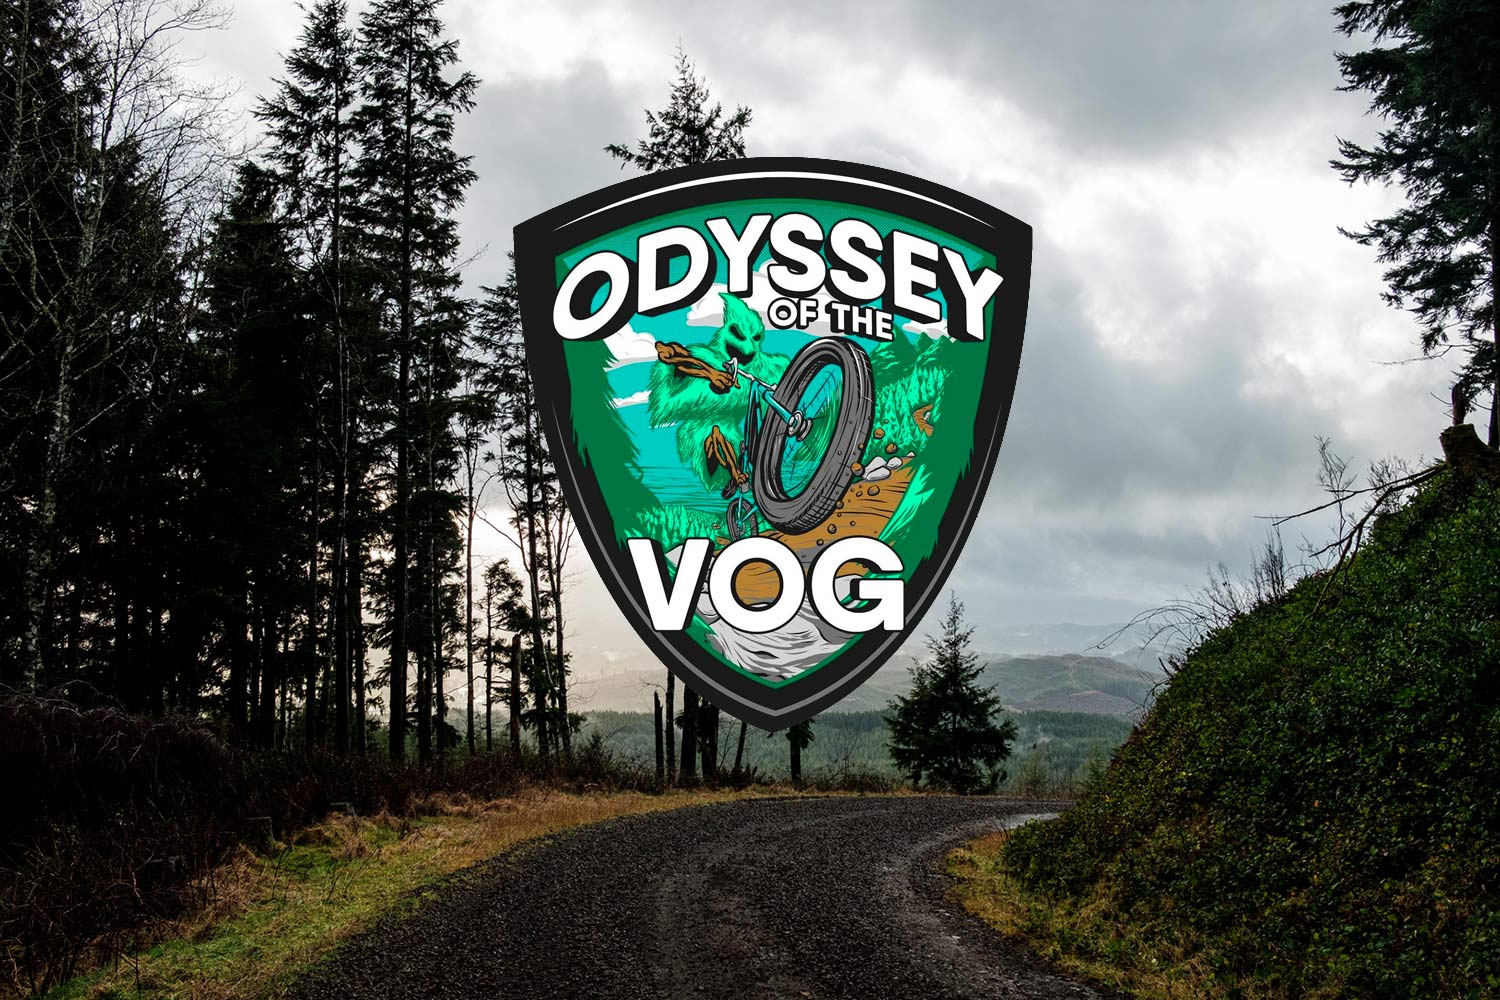 Bikepacking the Valley of the Giants in Oregon's new Odyssey of the VOG event